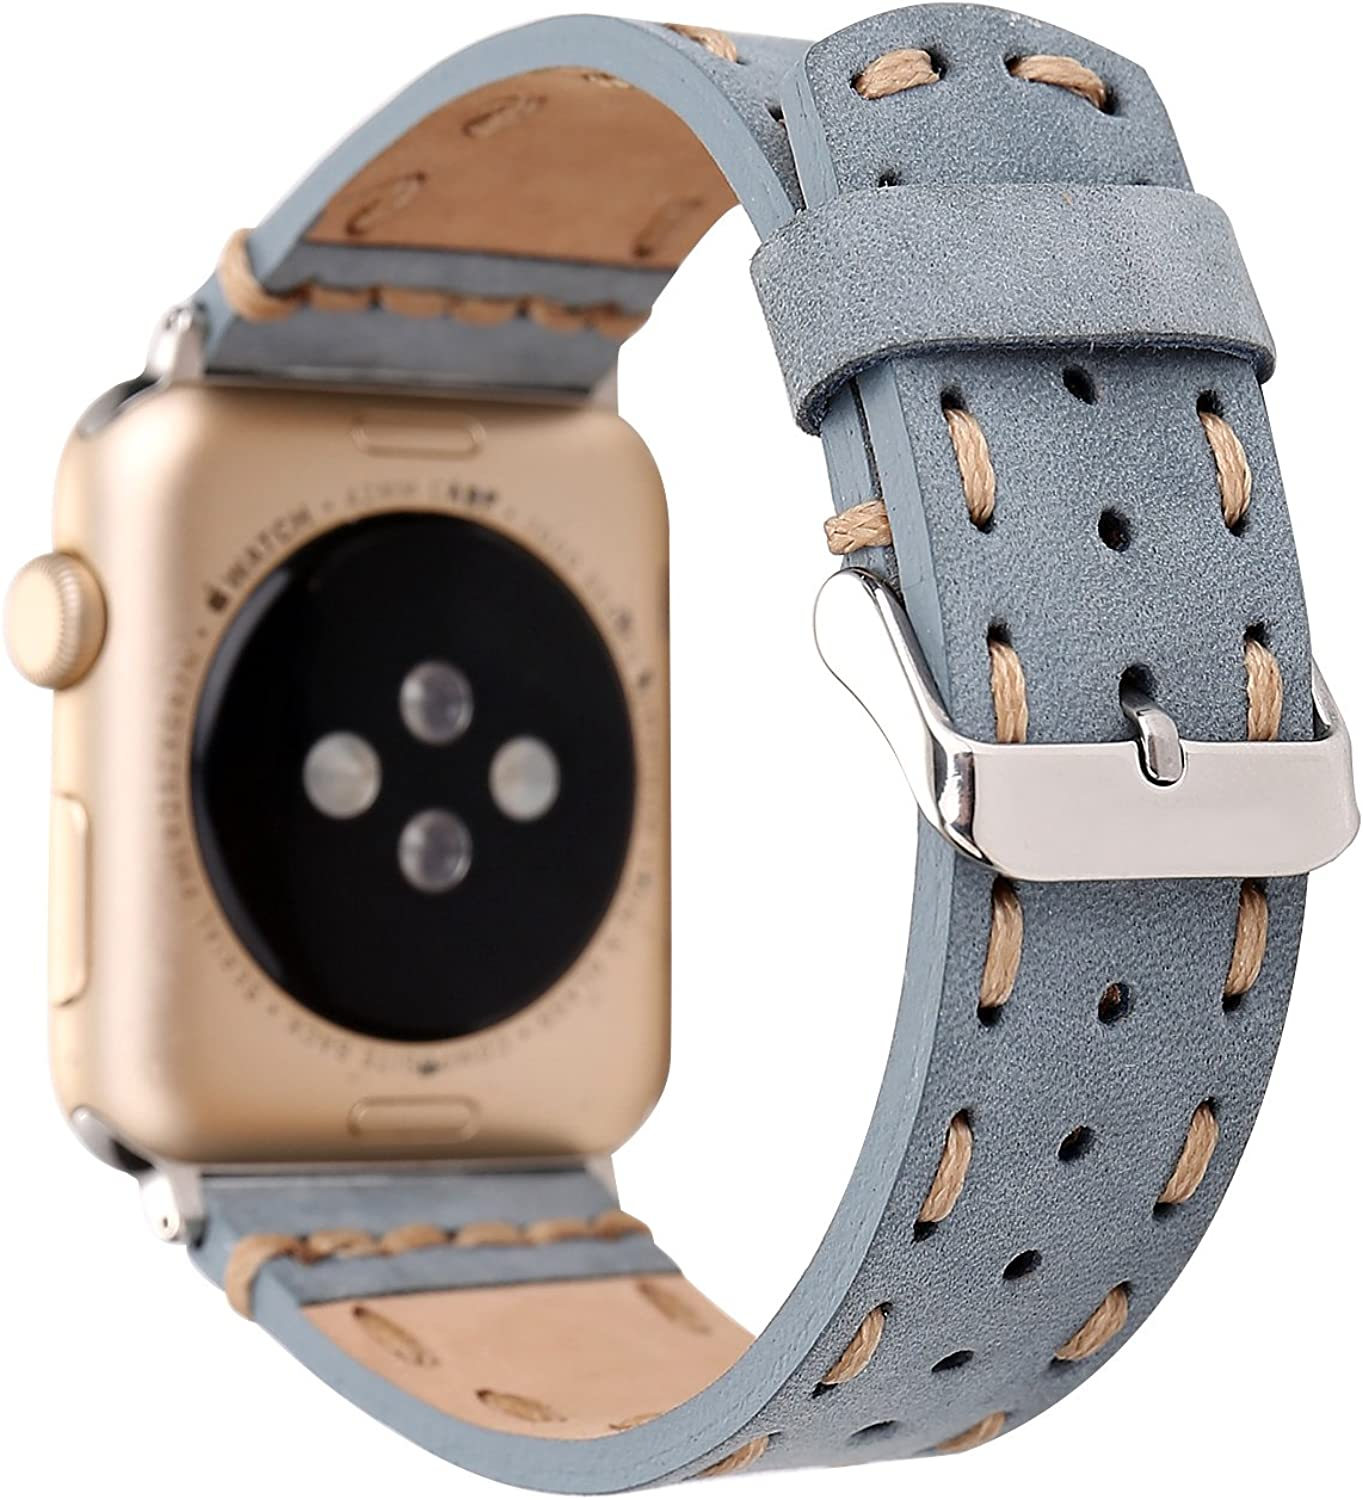 MeShow TCSHOW 40mm/38mm Handmade Vintage Calf Genuine Leather Strap Wrist Band with Secure Metal Clasp Buckle Compatible for Apple Watch Series 6 SE 5 4 3 2 1 (1pcs Light Blue)